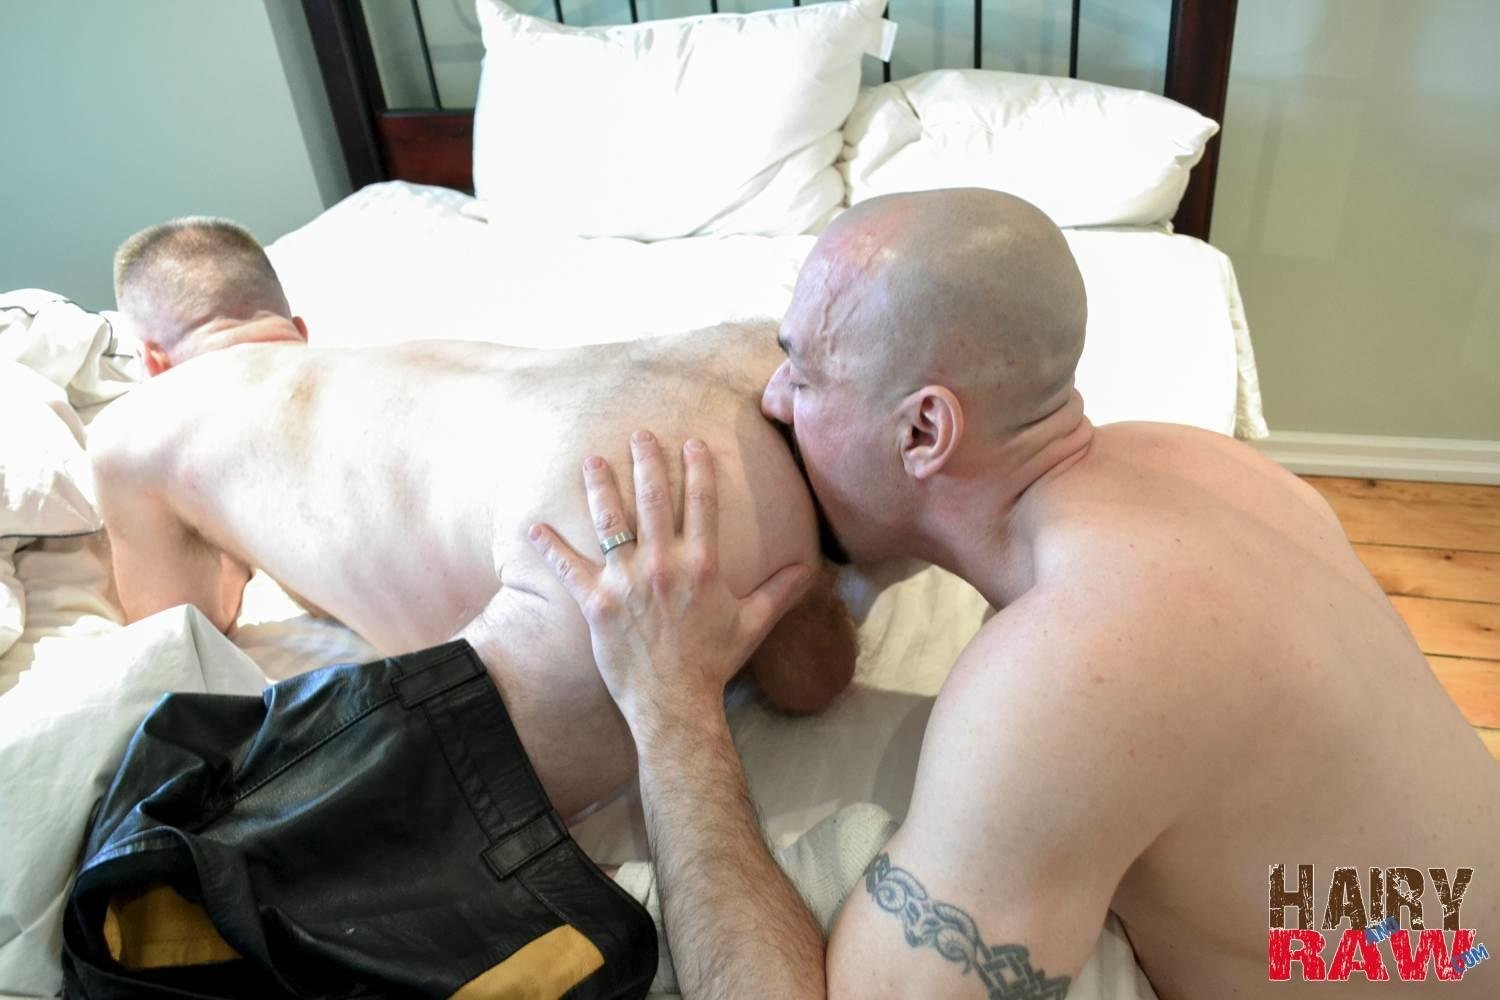 Hairy and Raw Troy Collins and CanaDad Masculine Hairy Daddies Fucking Bareback Amateur Gay Porn 11